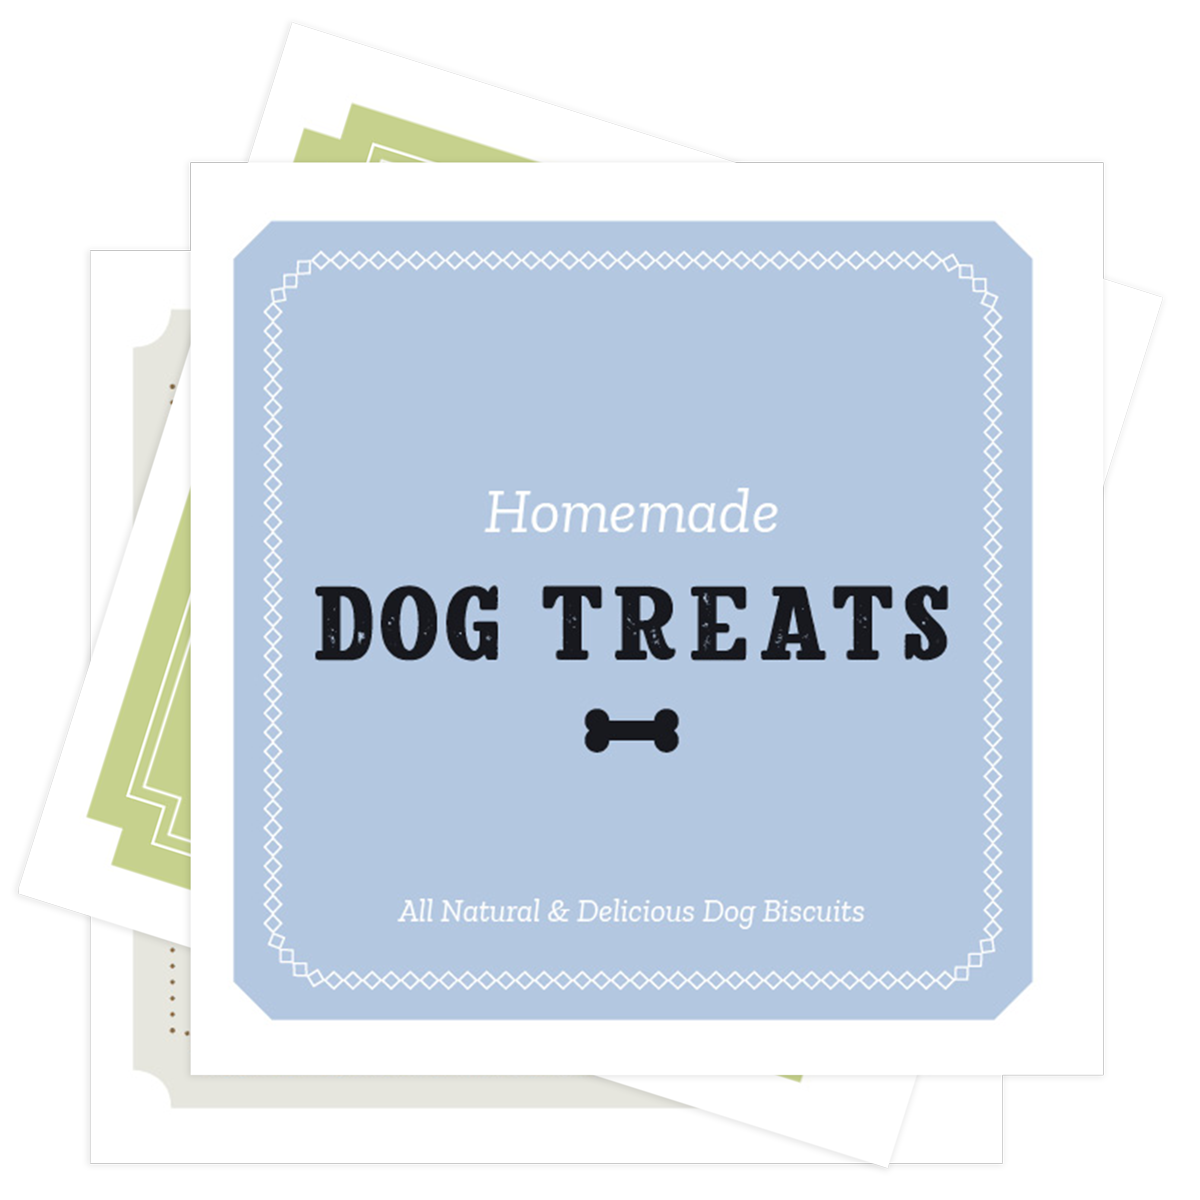 Homemade Dog Treats labels